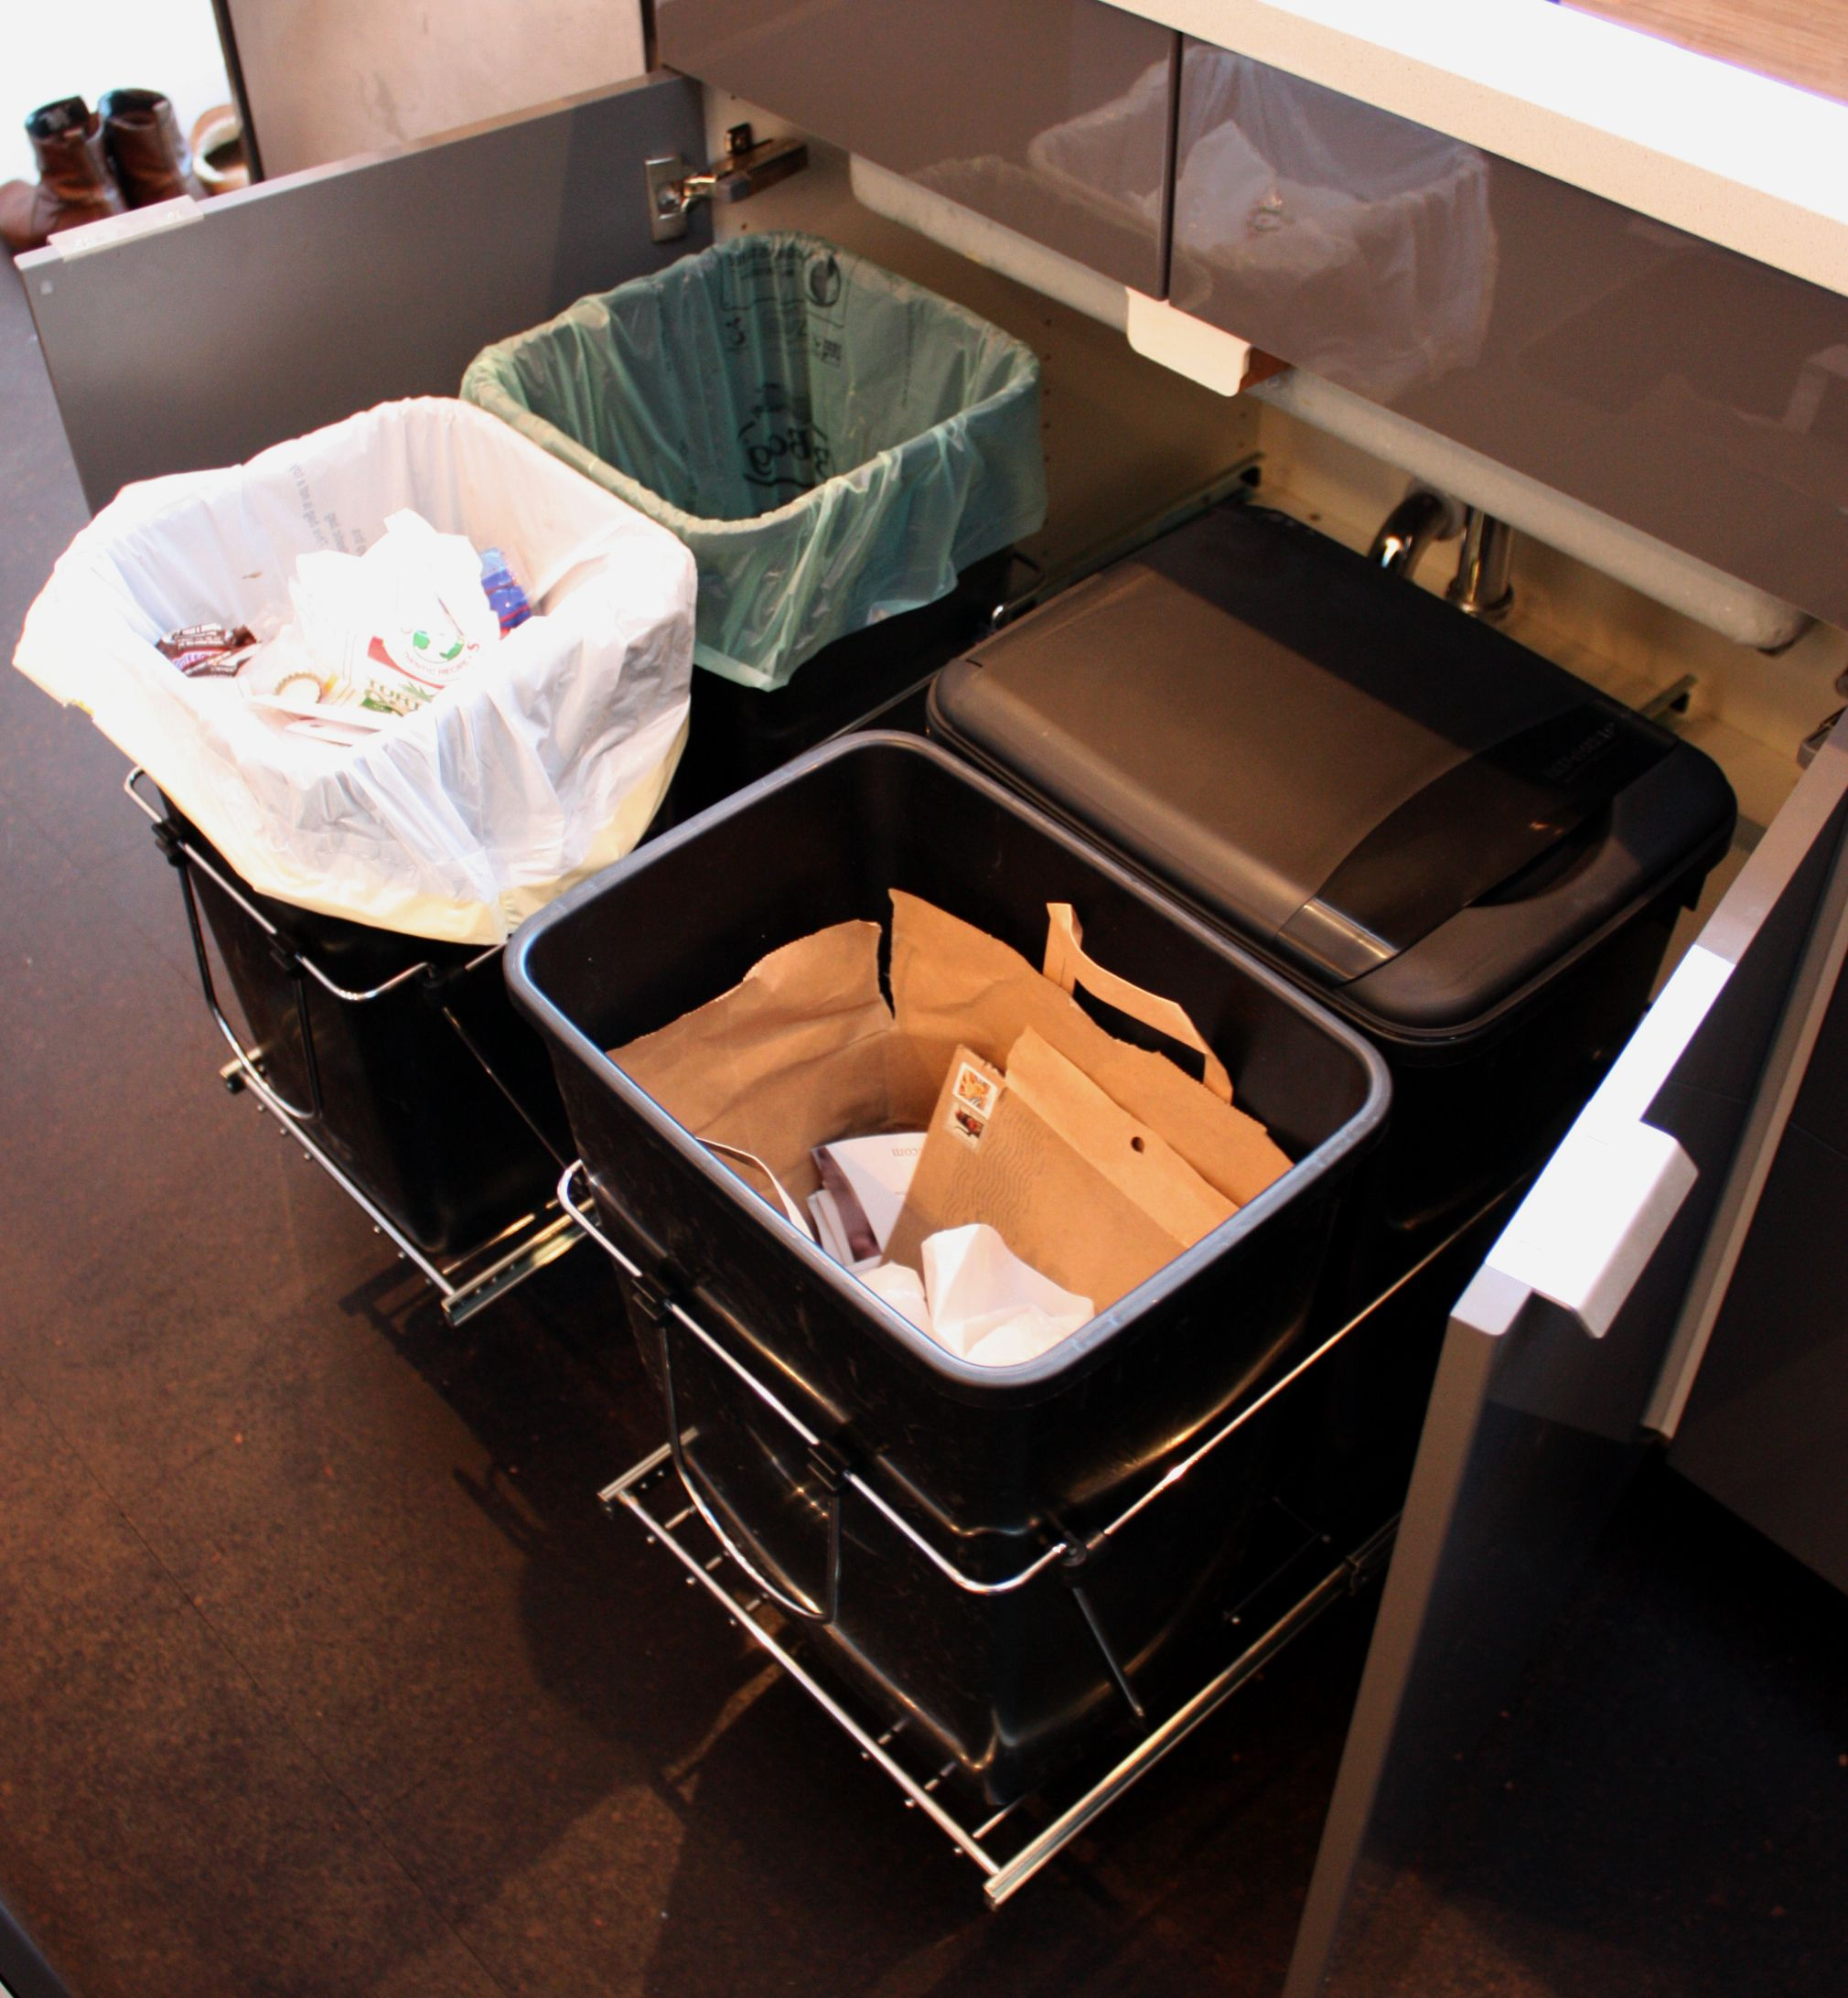 Awesome Query Whether Ikea Pull Out Under Sink Drawer 80 Cm Gives Enough Trash/recycling  Storage.